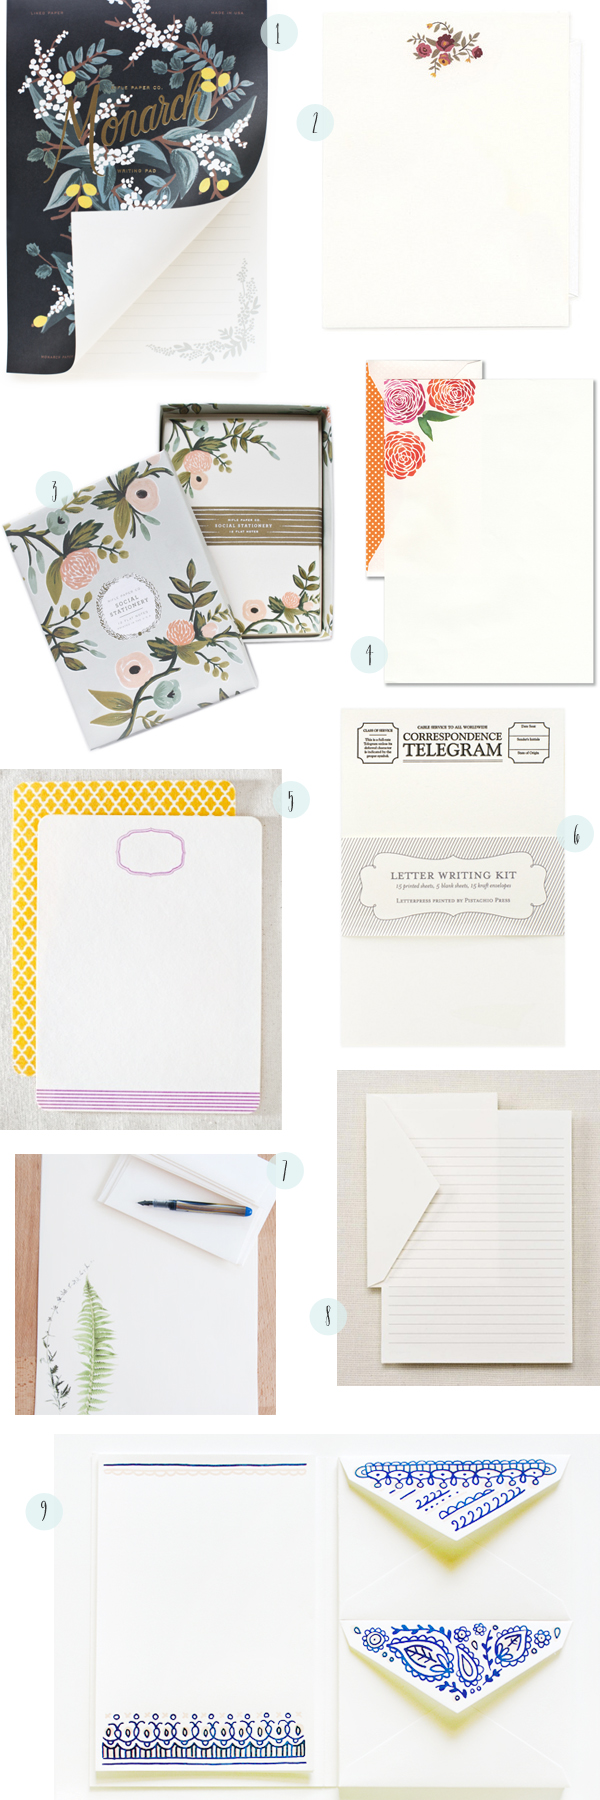 Stationery A Z Writing Sheets OSBP Stationery A Z: Writing Sheets